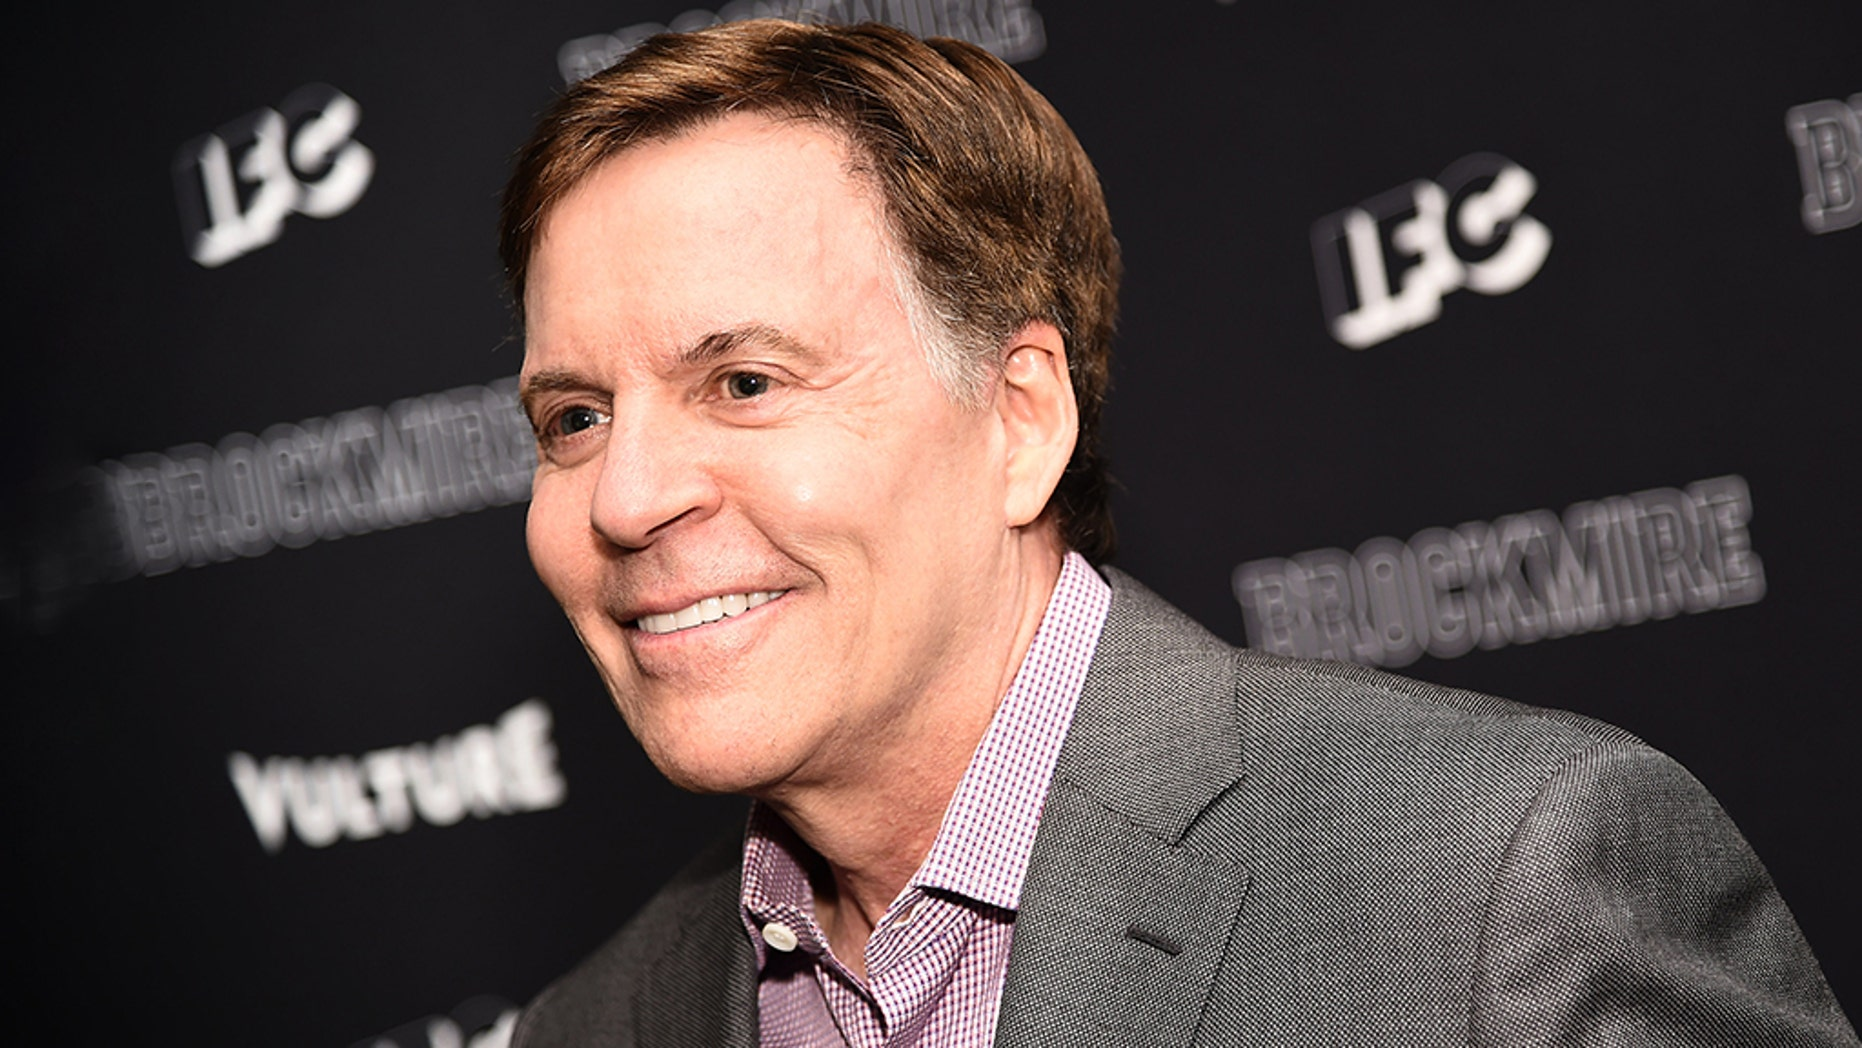 Legendary sports broadcaster Bob Costas said NBC pulled him from covering the 2018 Super Bowl because he criticized football as unsafe.